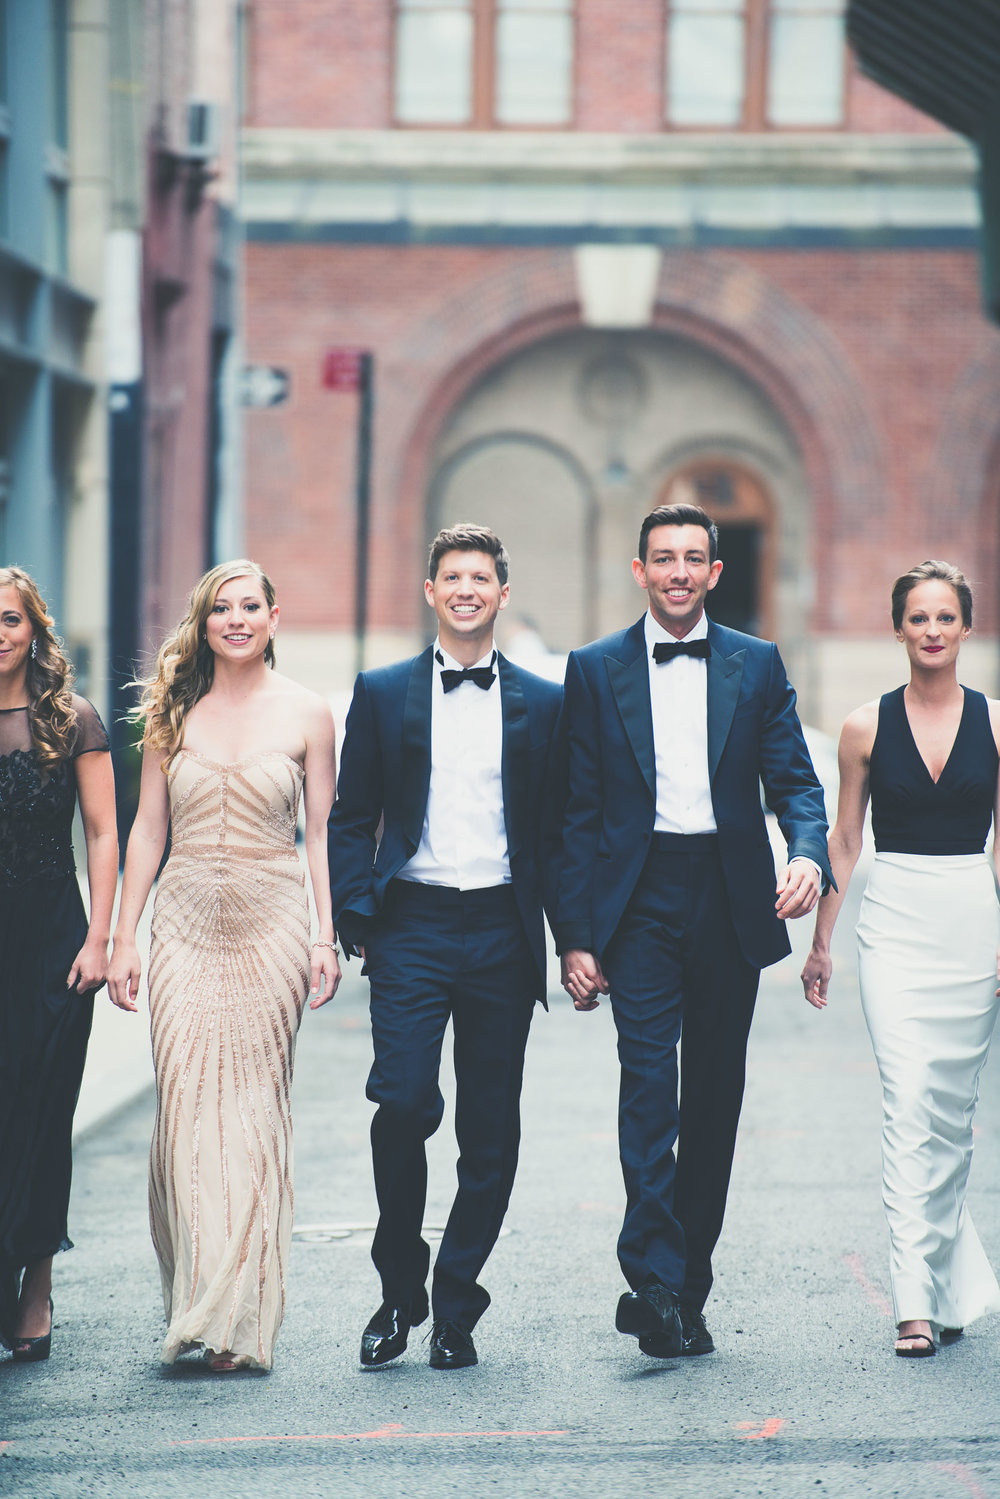 Same sex bridal party - Weddings - Photo credit Nicola Bailey.jpg